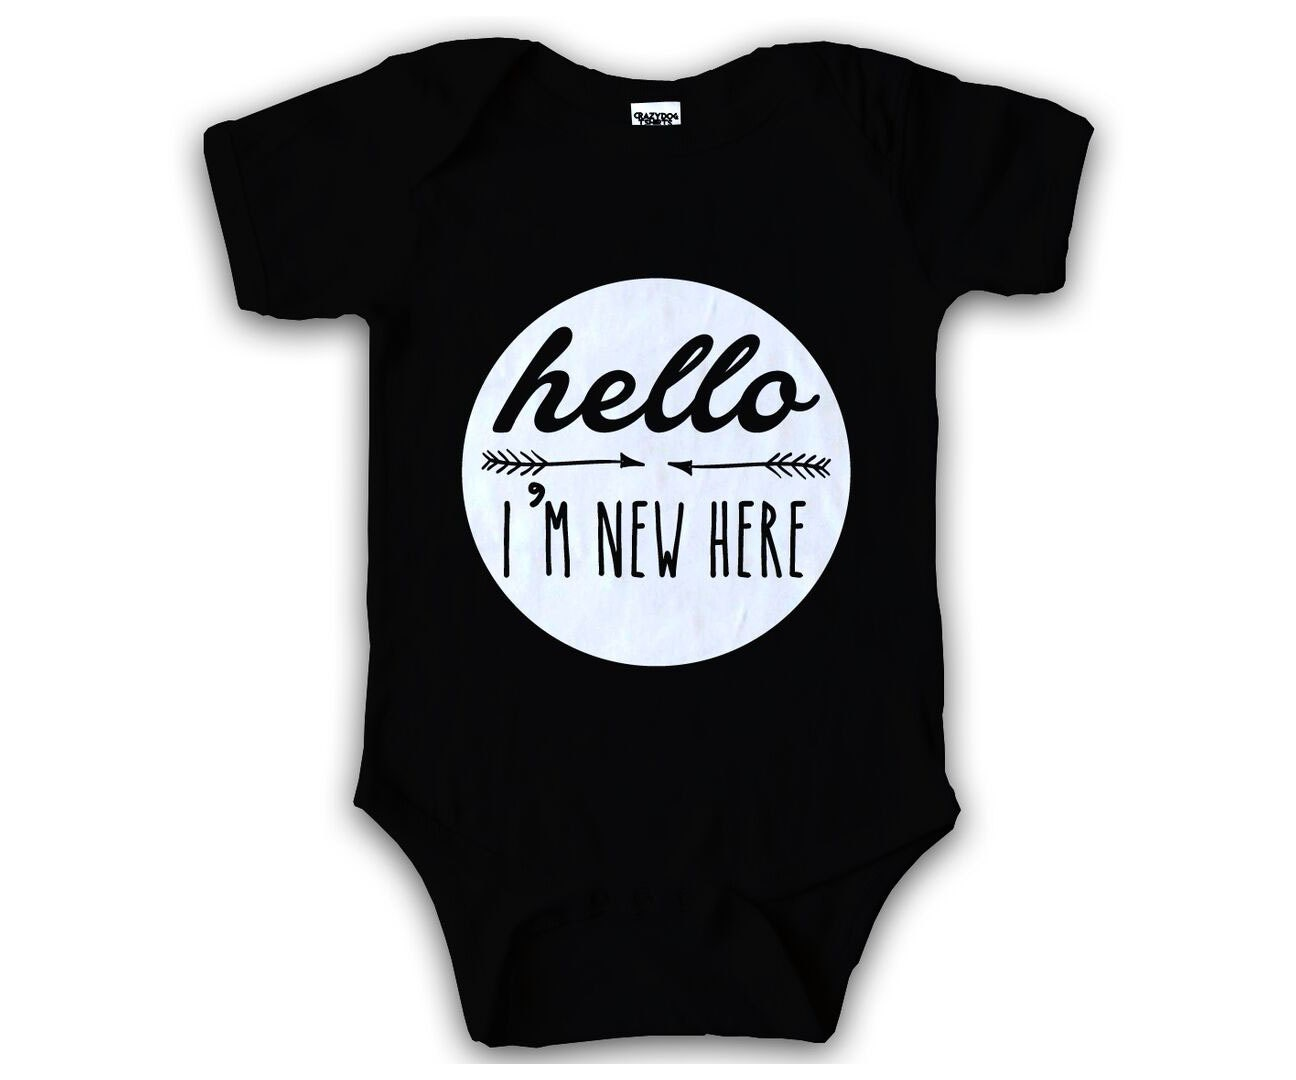 cool baby clothes bbg clothing. Black Bedroom Furniture Sets. Home Design Ideas